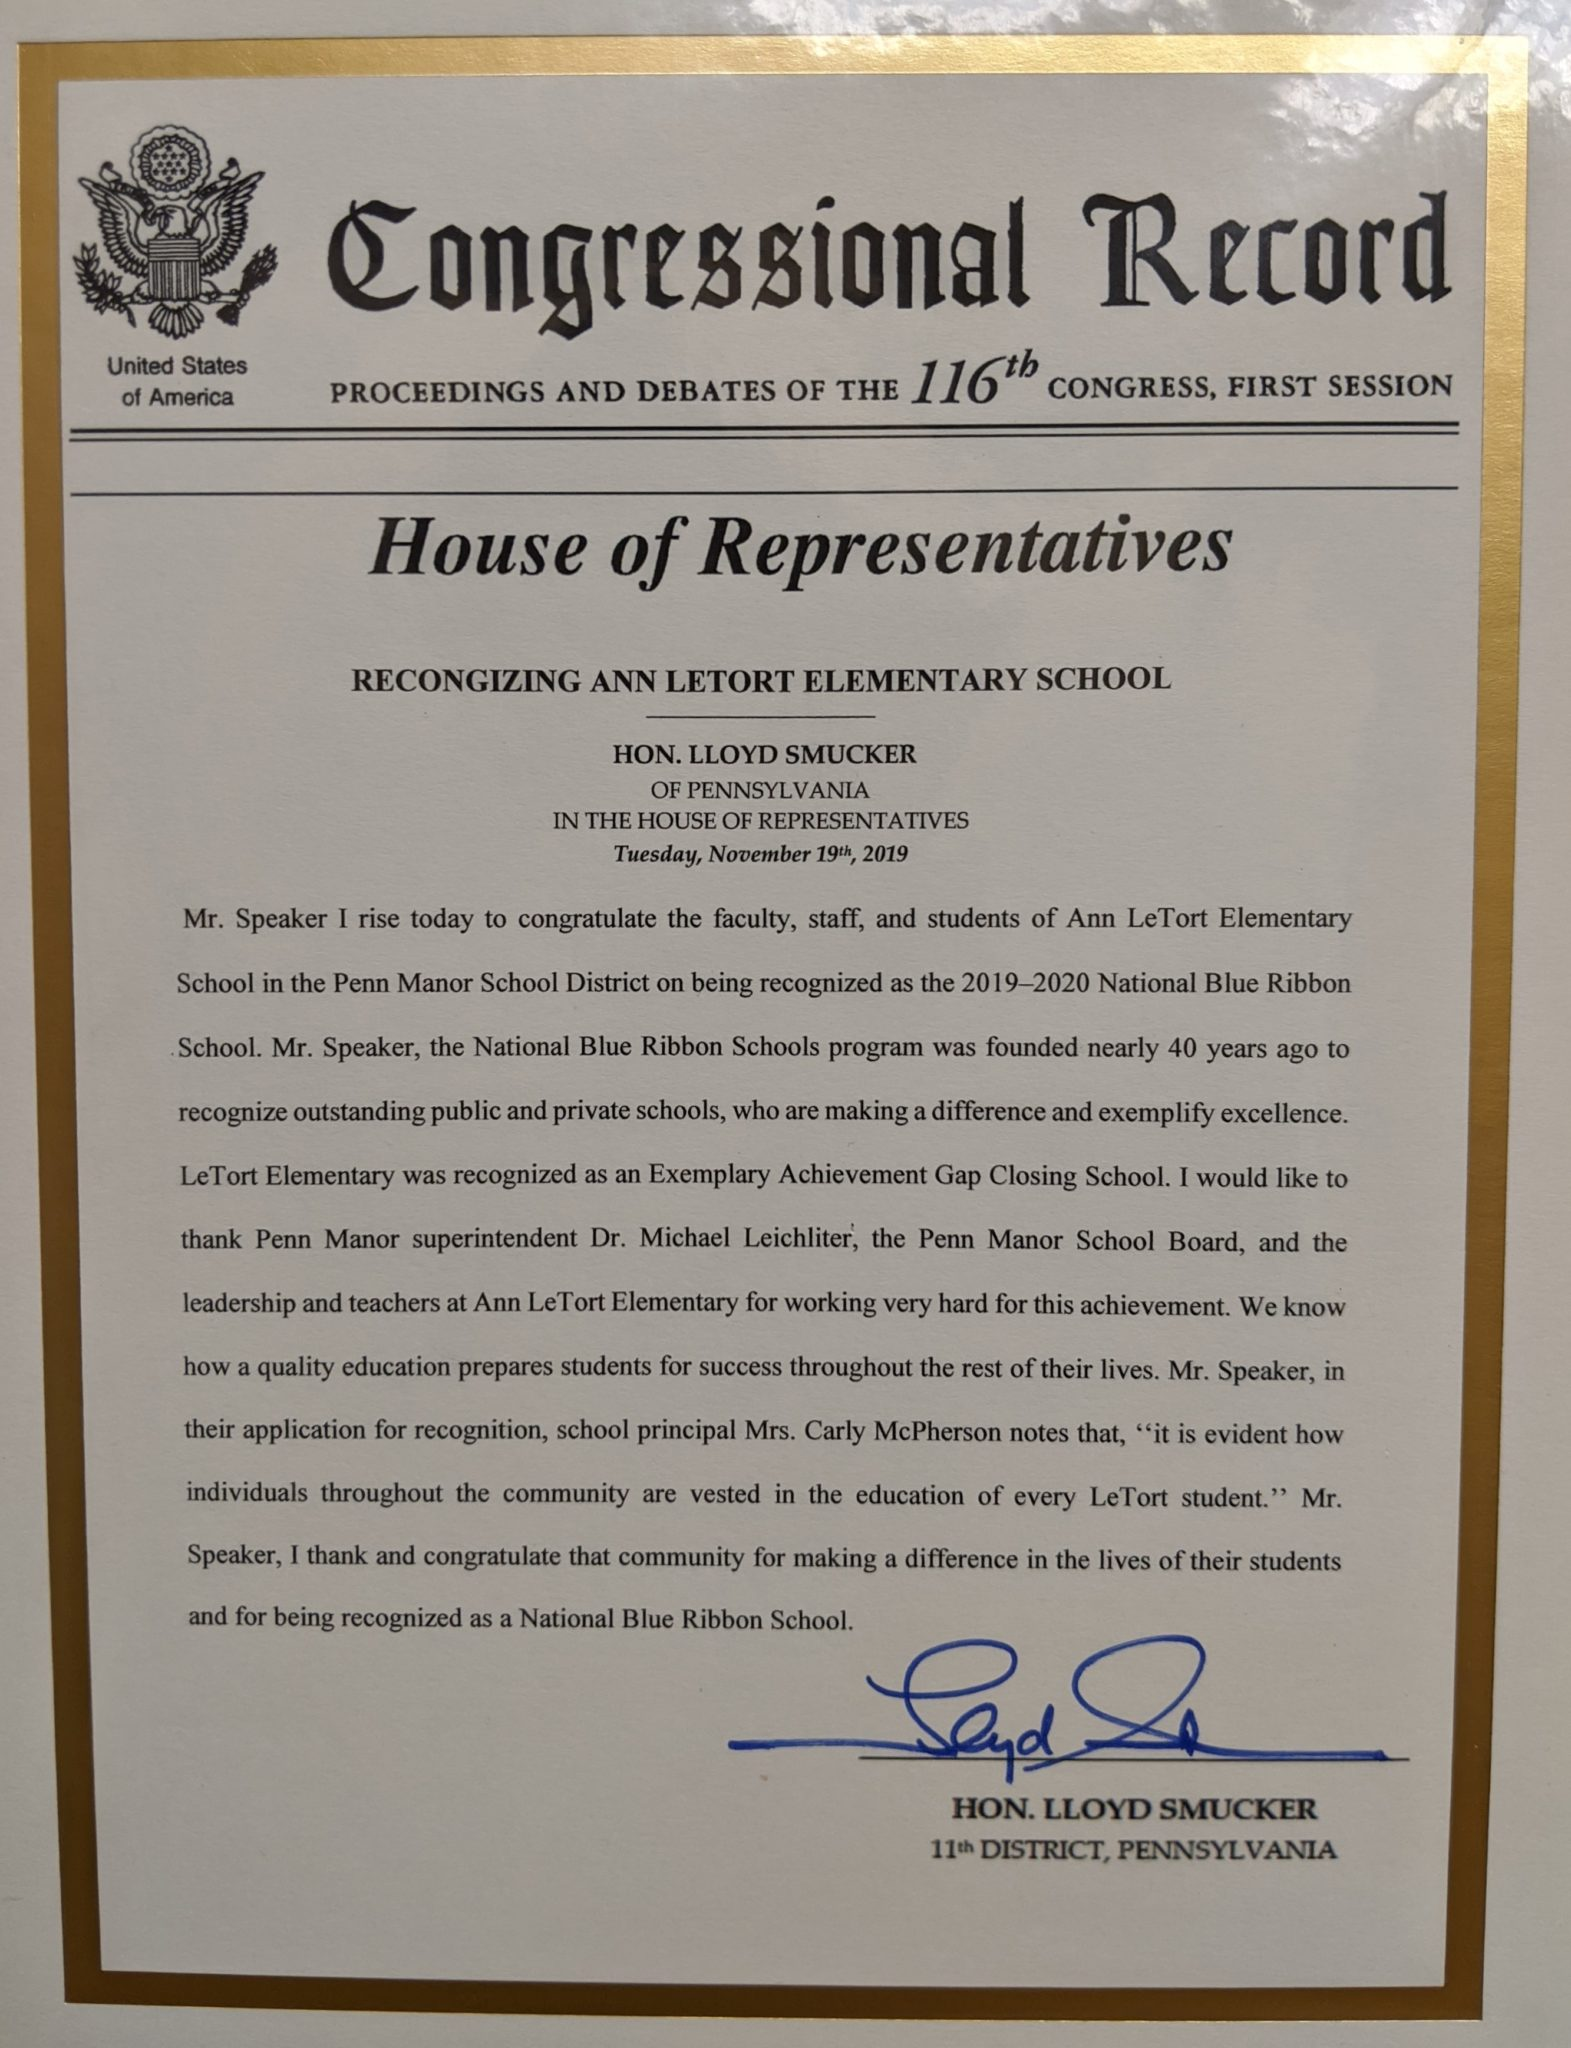 Rep. Smucker's proclamation in the House of Representatives